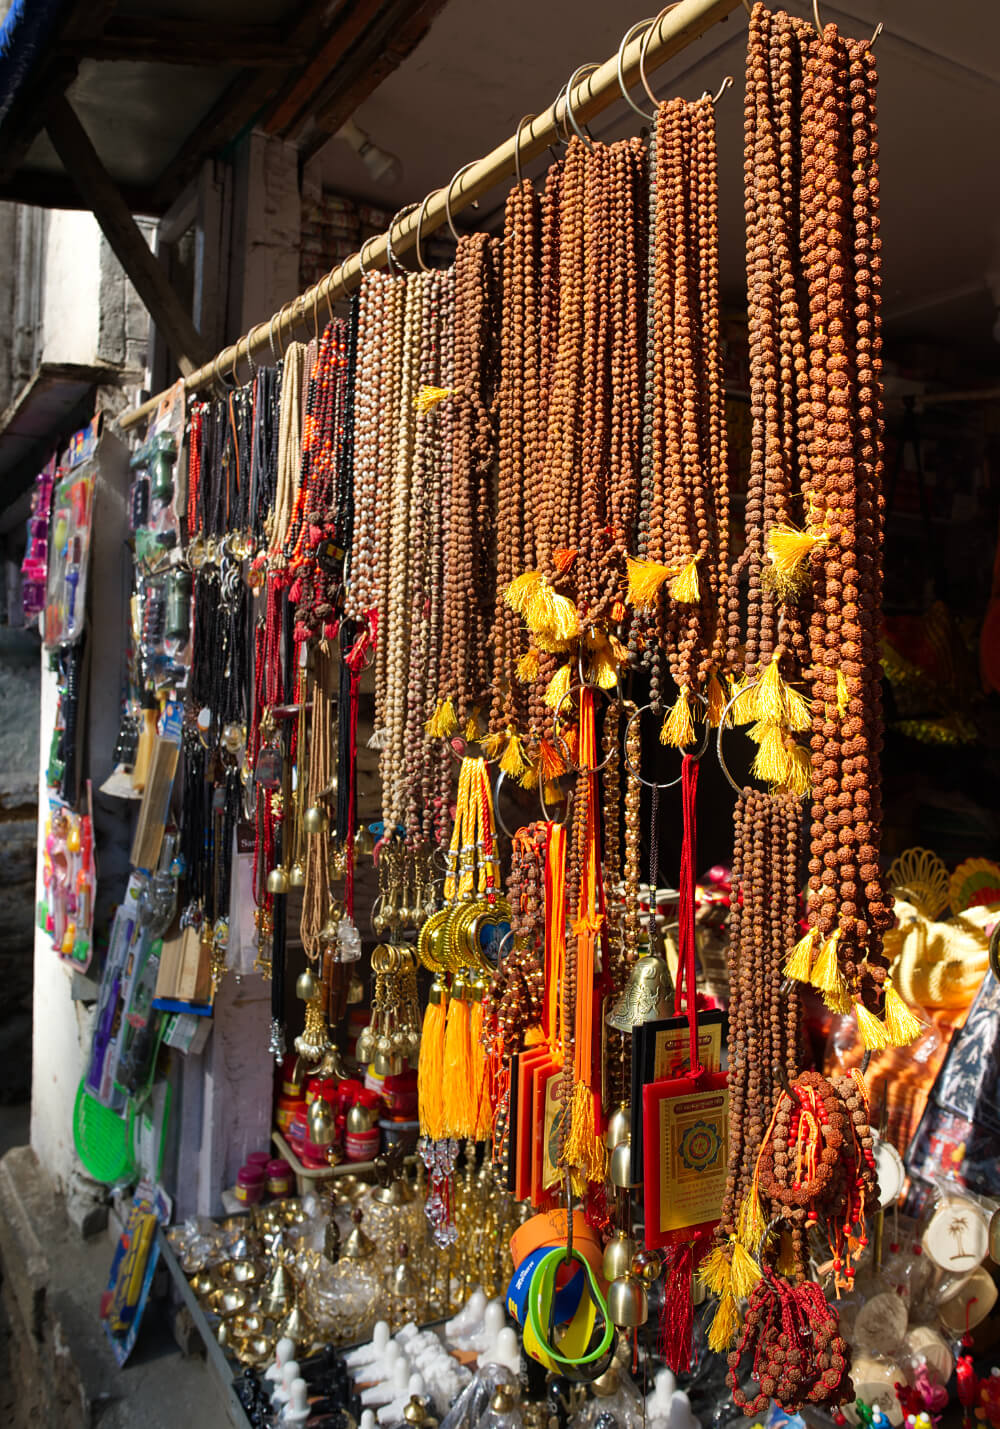 Shops near Temples selling Souvenirs and Religious Items